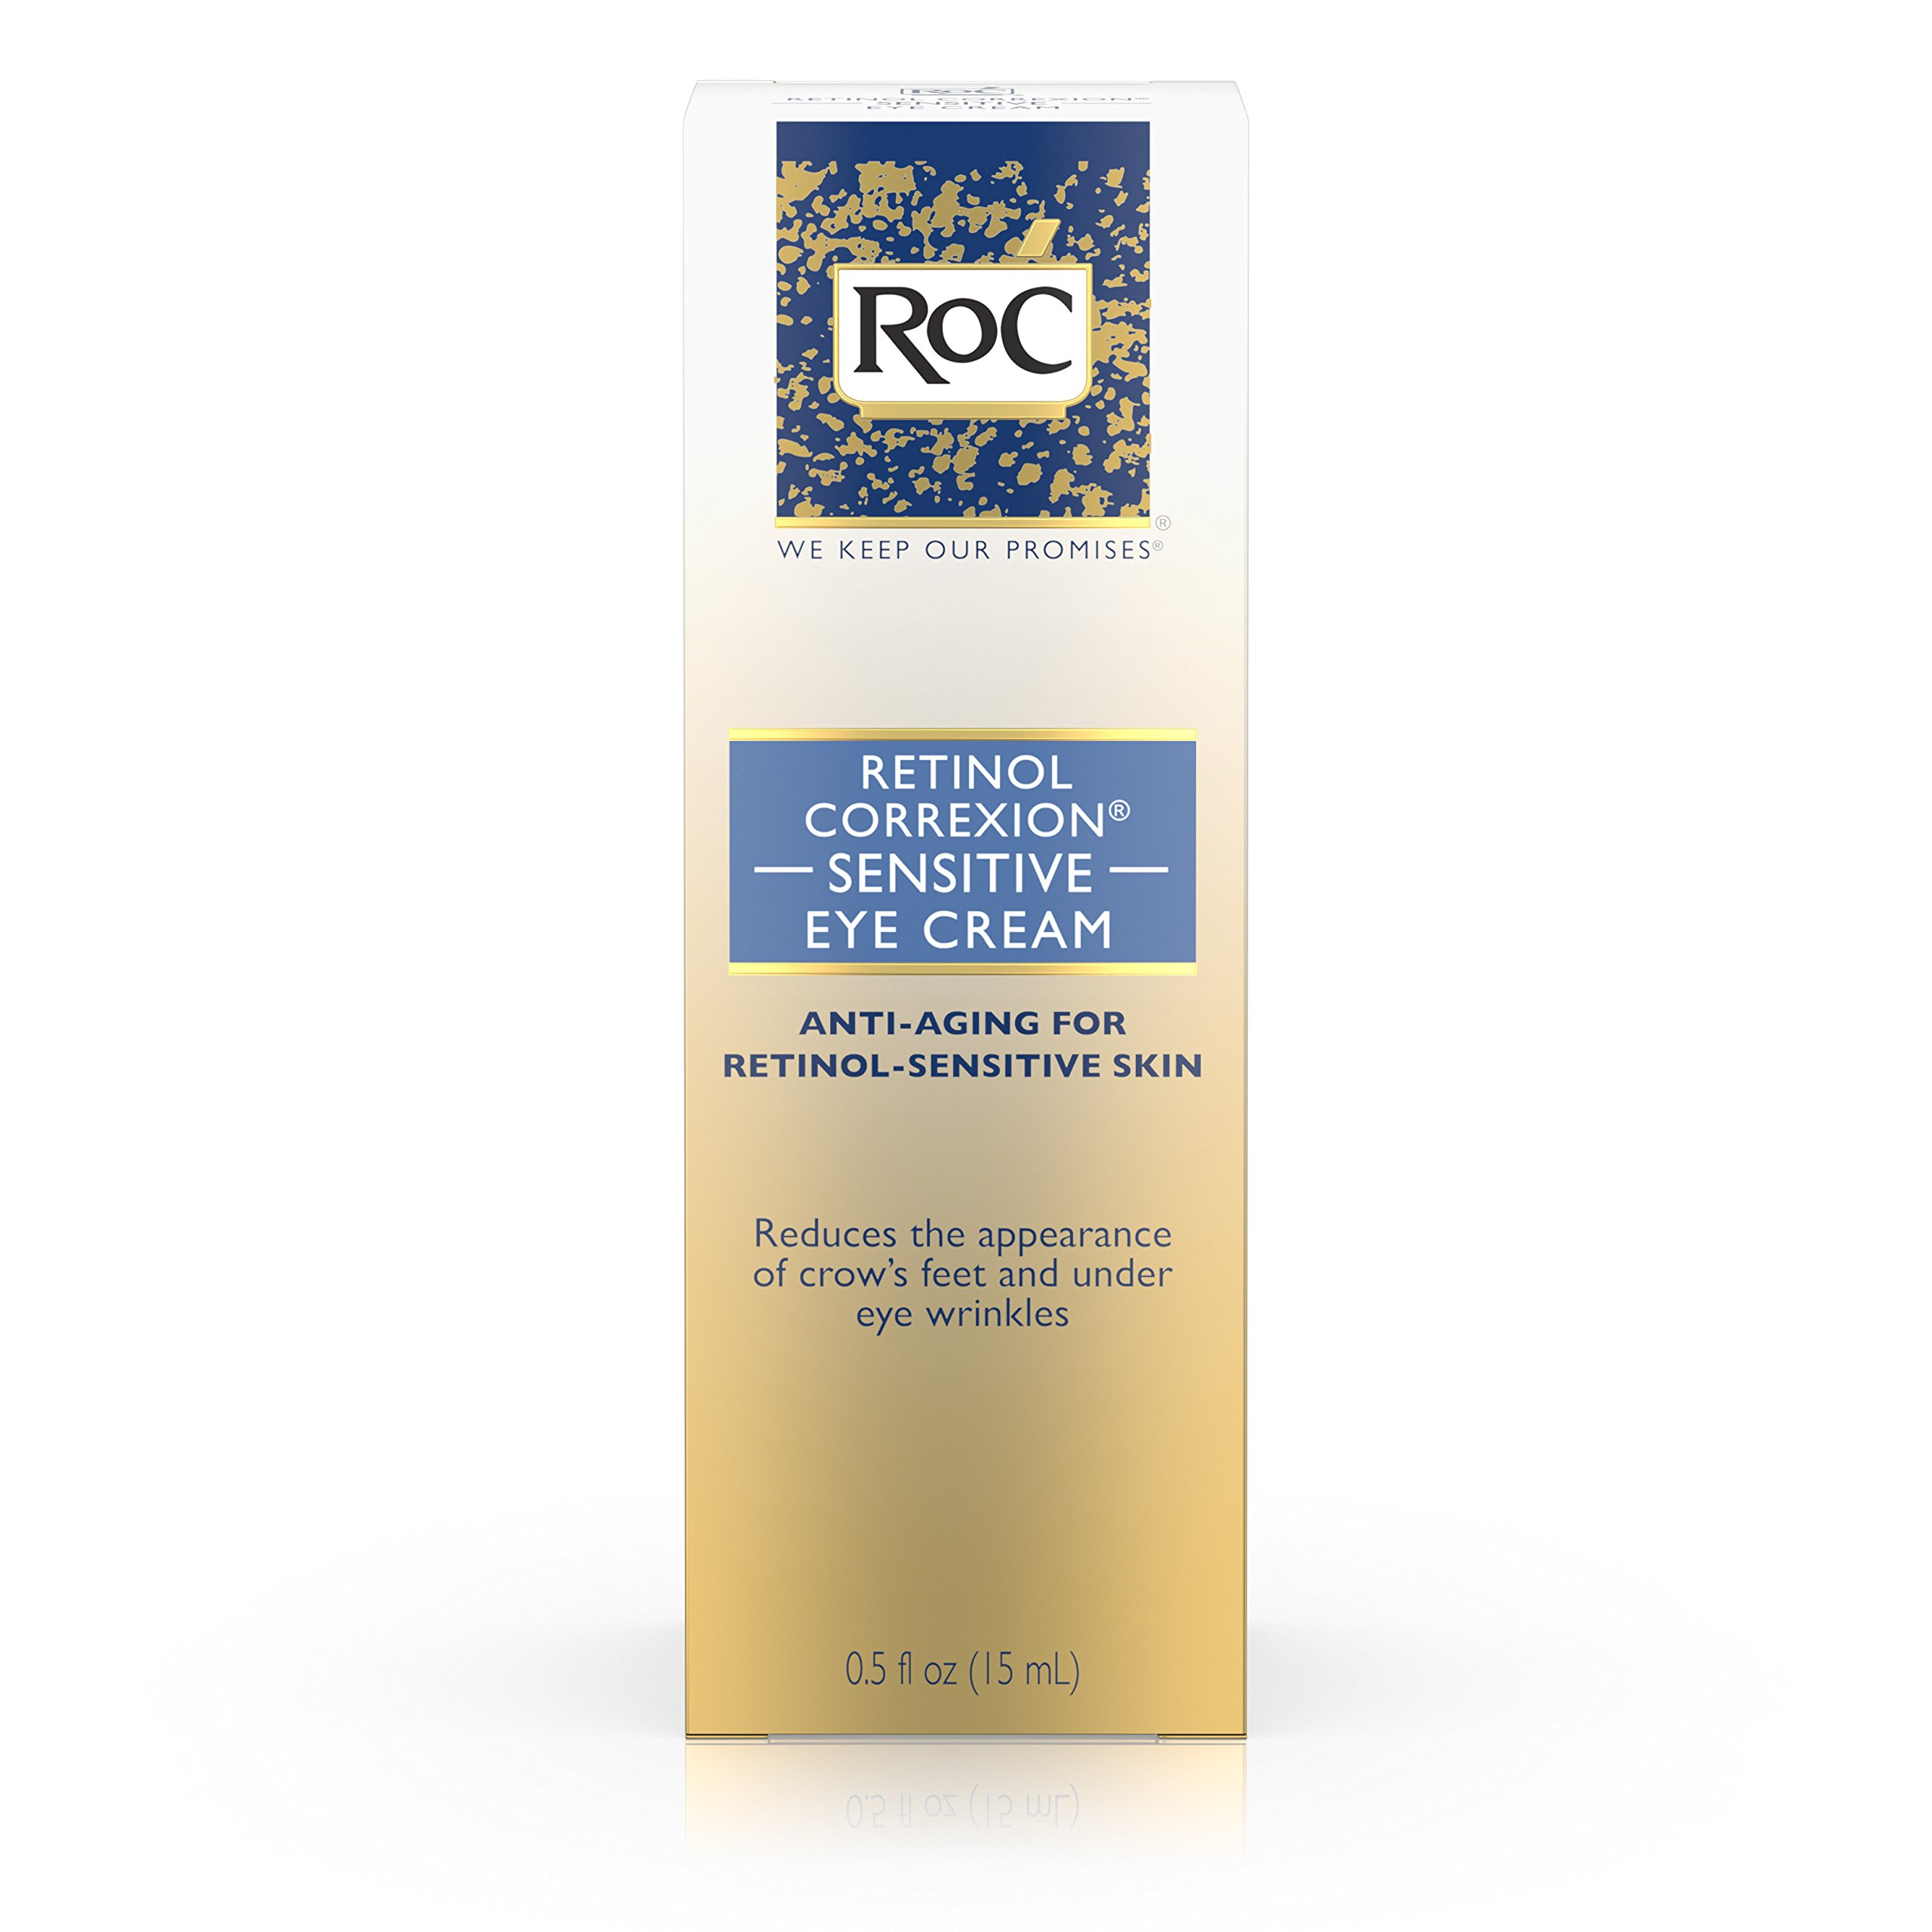 RoC Retinol Correxion Anti-Aging Eye Cream for Sensitive Skin, Anti-Wrinkle Treatment with milder retinol formula that helps condition skin to retinoids .5 fl. oz